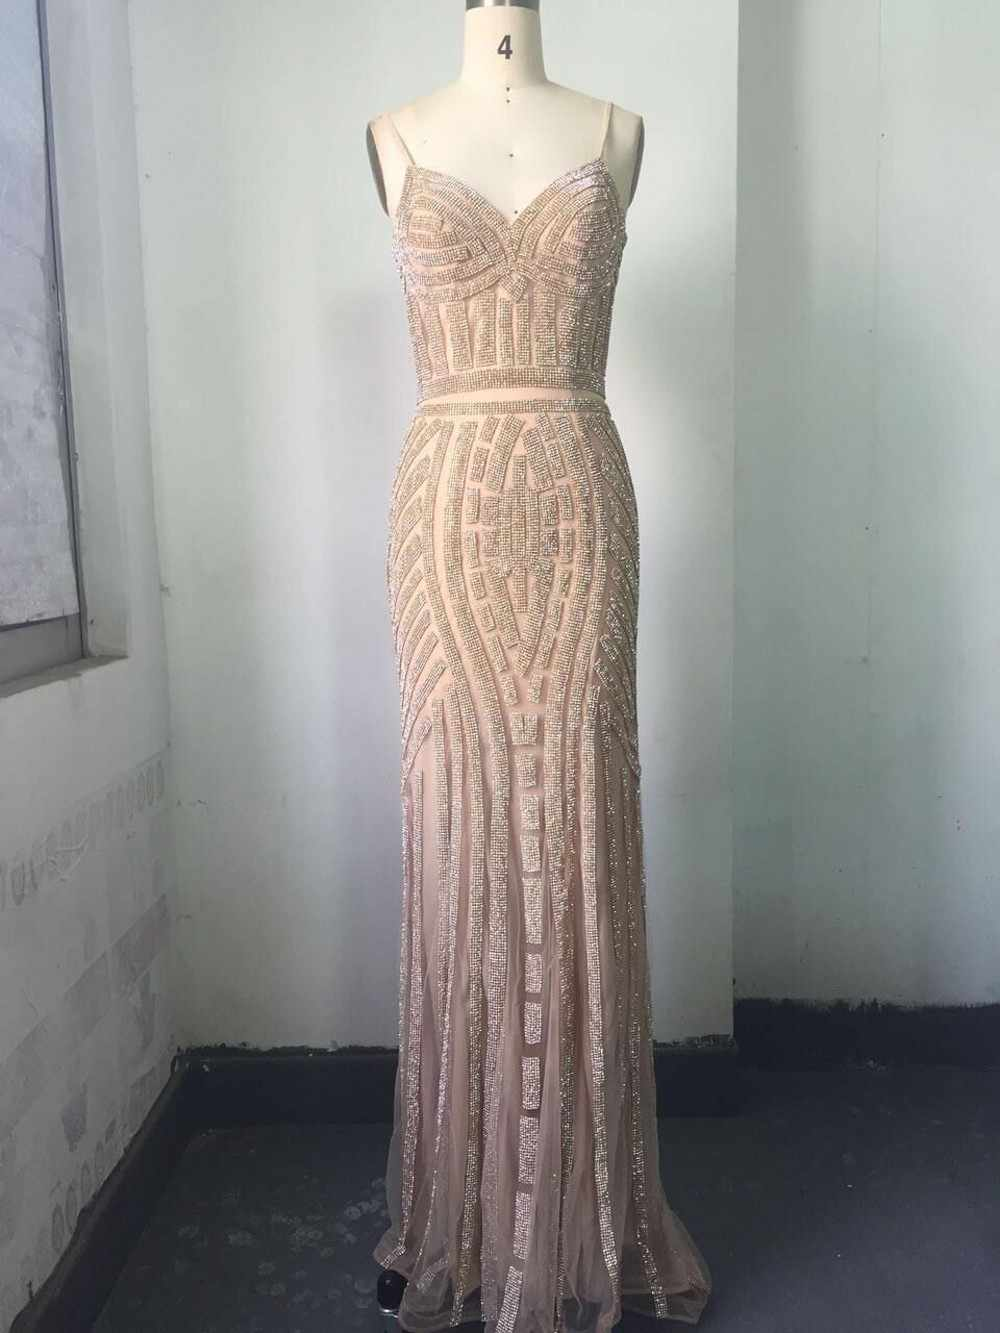 ... In Stock Mermaid Evening Dresses Crystal Beads Formal Party Gowns with Spaghetti  Strap Long robe de ... cca7aa5db3b8